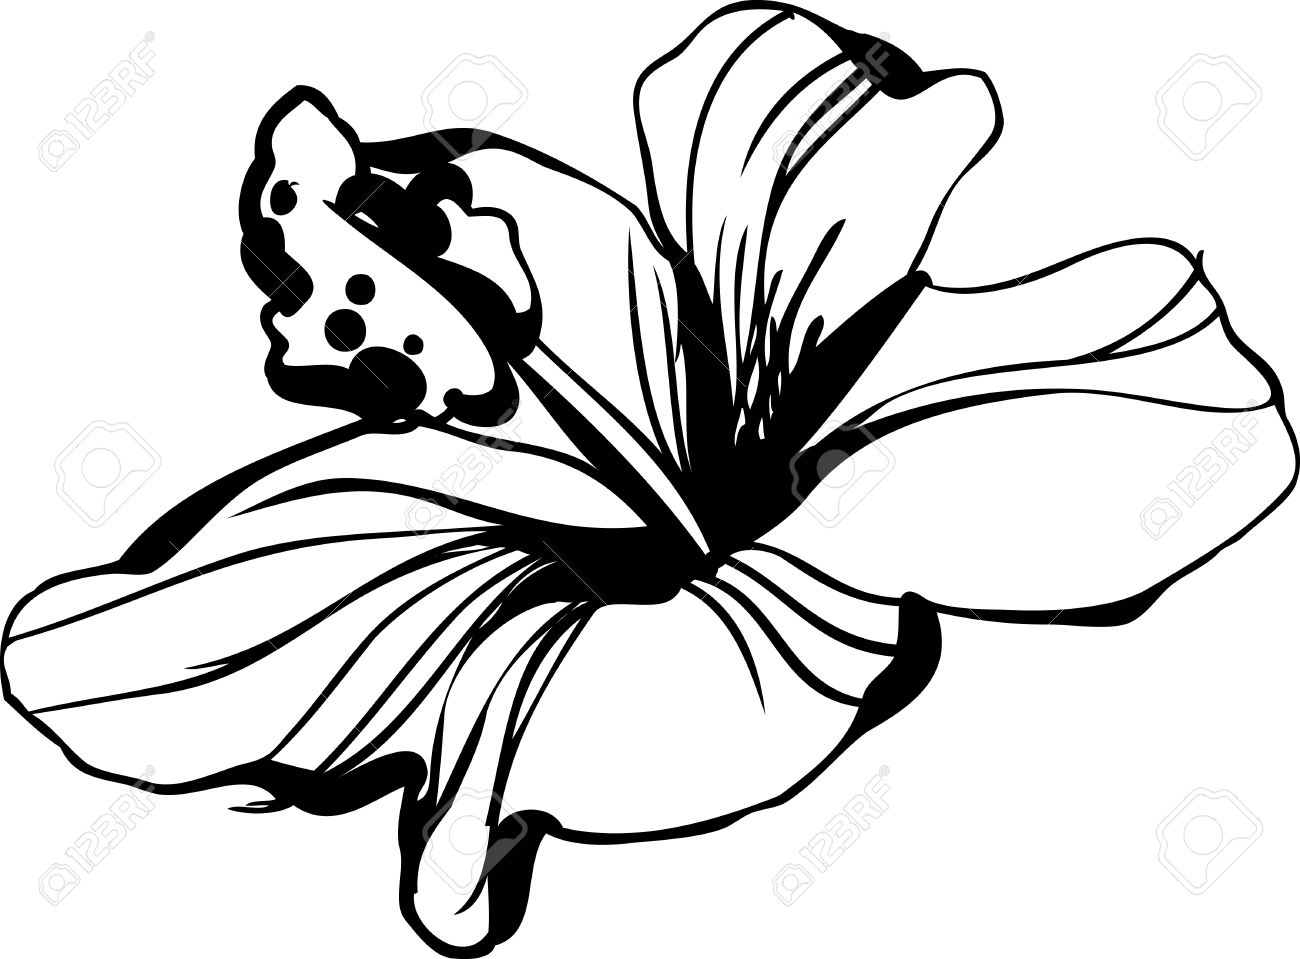 Line Art Flower Drawing : Sketch blossoming hibiscus flower bud royalty free cliparts